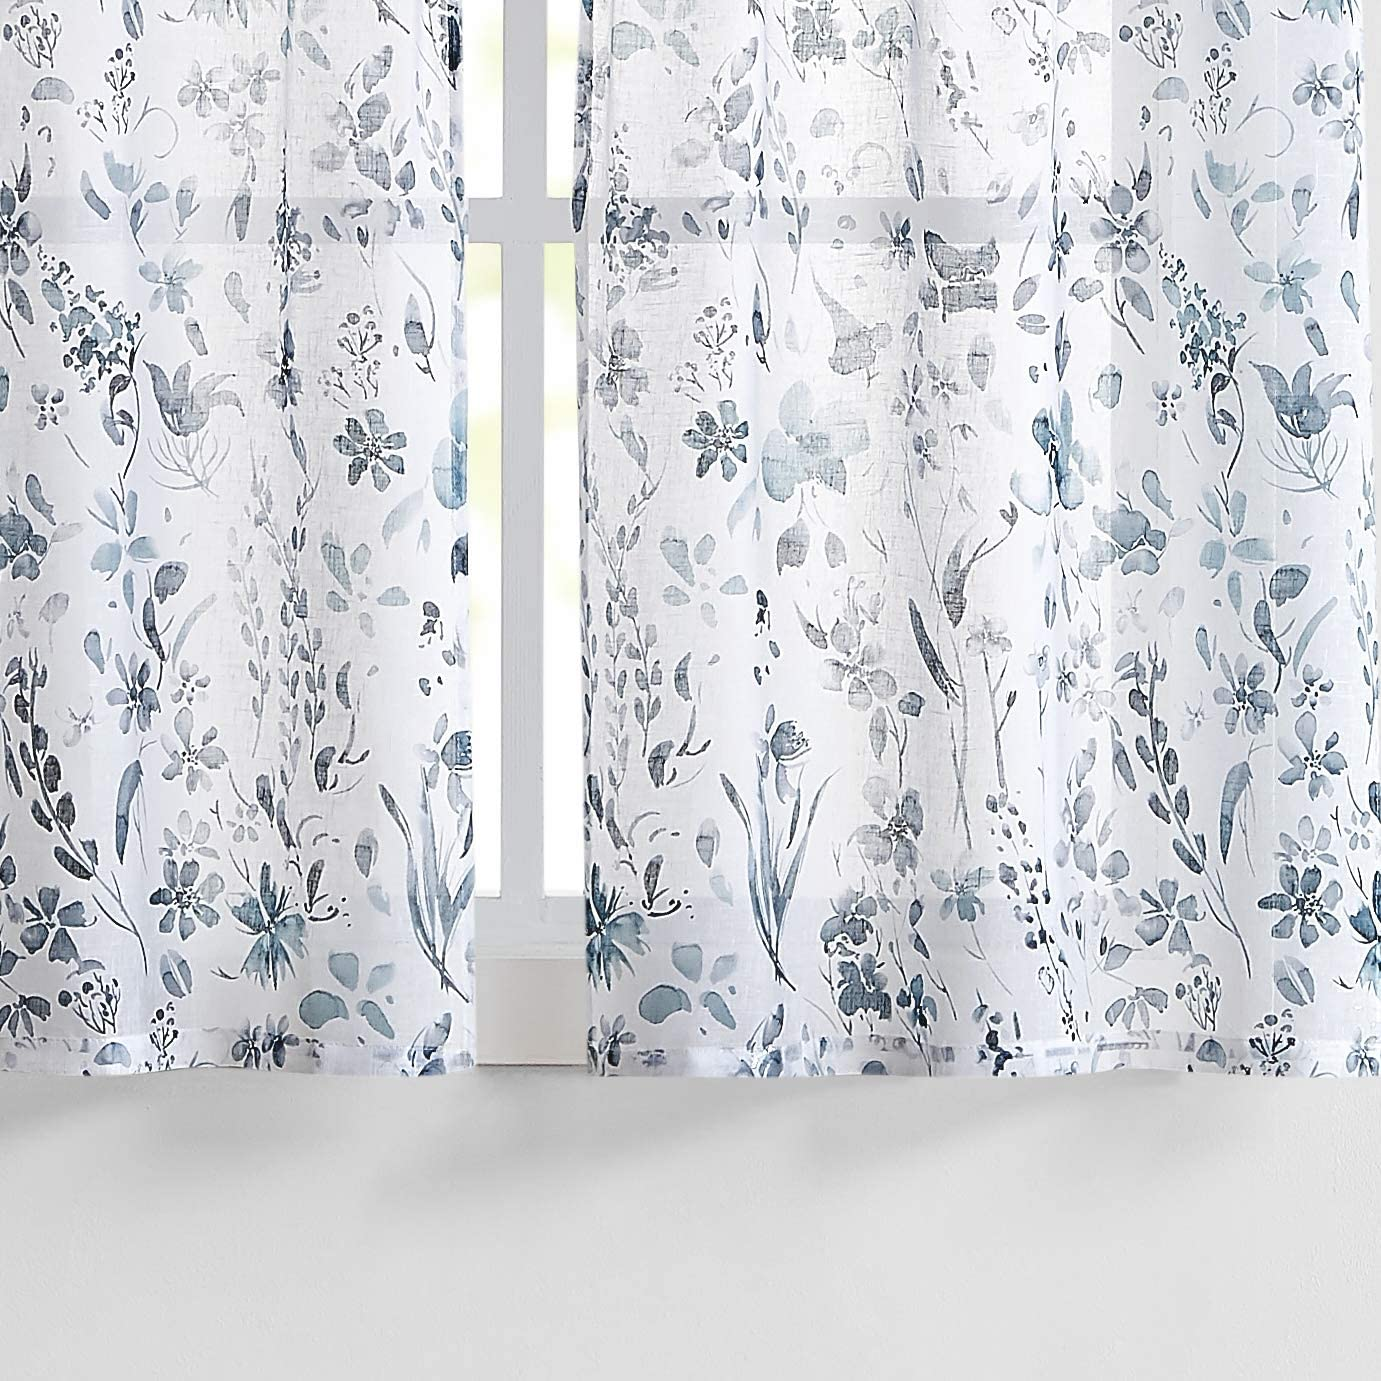 "Fragrantex Dusty Gray Blue Morning Glory Flower Print Tier Curtains 45 inch Length for Kitchen/Travel Trailer Linen Texture Fabric, Rustic Farmhouse Style, 28"" W x 45"" L/Panel, Rod Pocket"